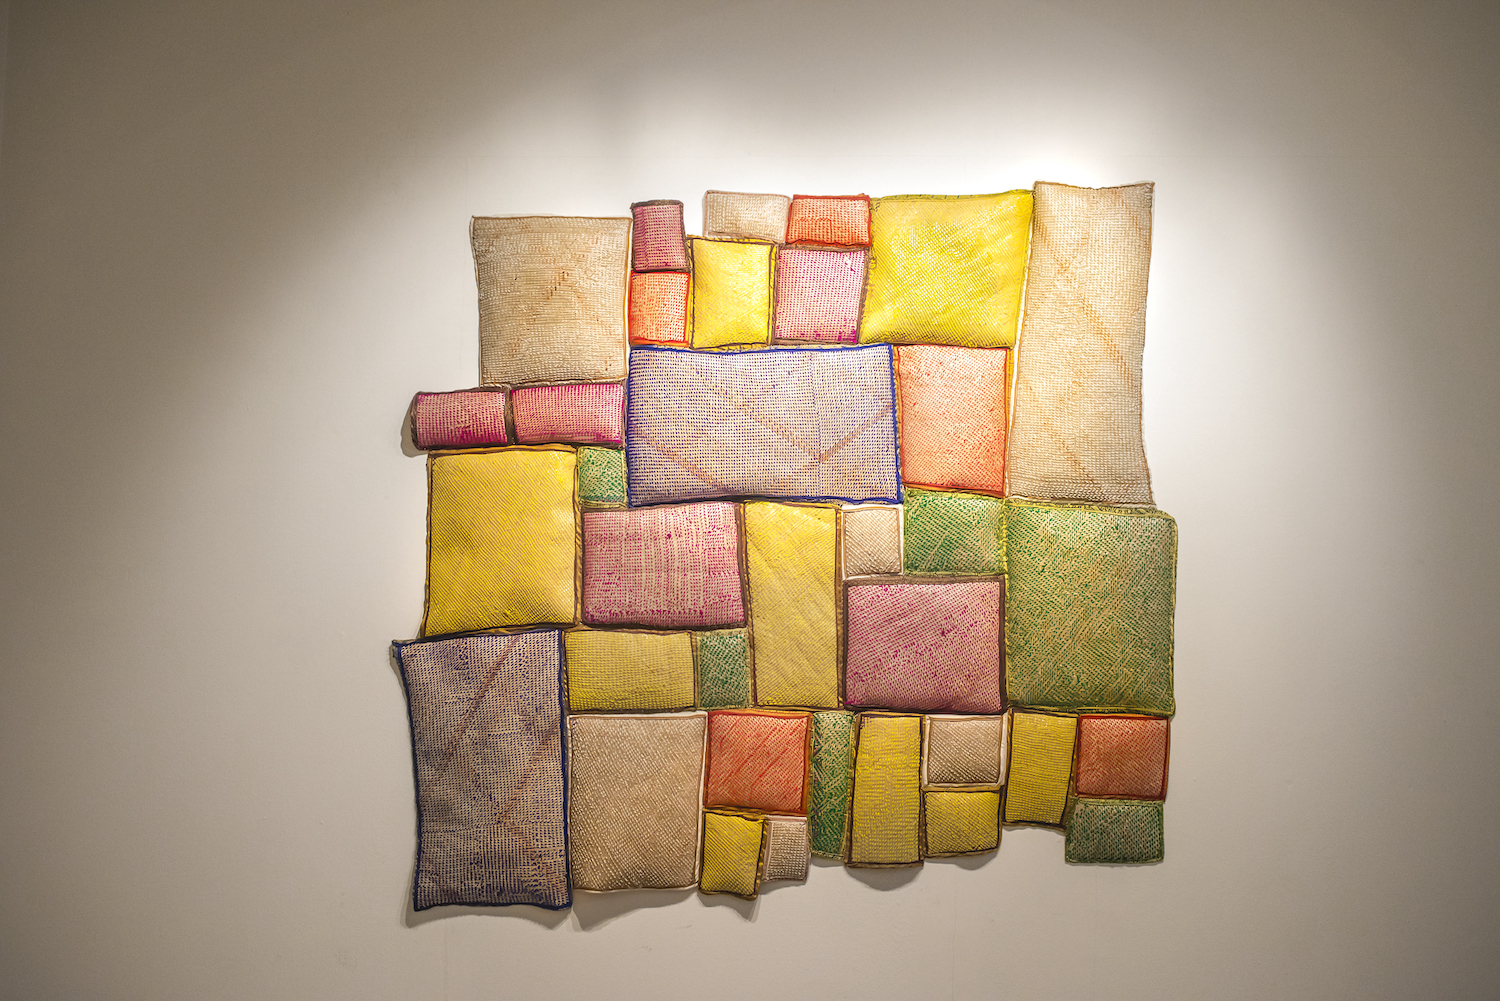 Ashfika Rahman, Redeem, 2020. Stitching on 'Shital pati' (a local handmade fabric made by indigenous community Oraon); Wool and recycled Saree. C-type print on archival paper with stitching in wool. 183 x 183 cm (Textile) / 15.24 x 15.24 cm (Photograph).